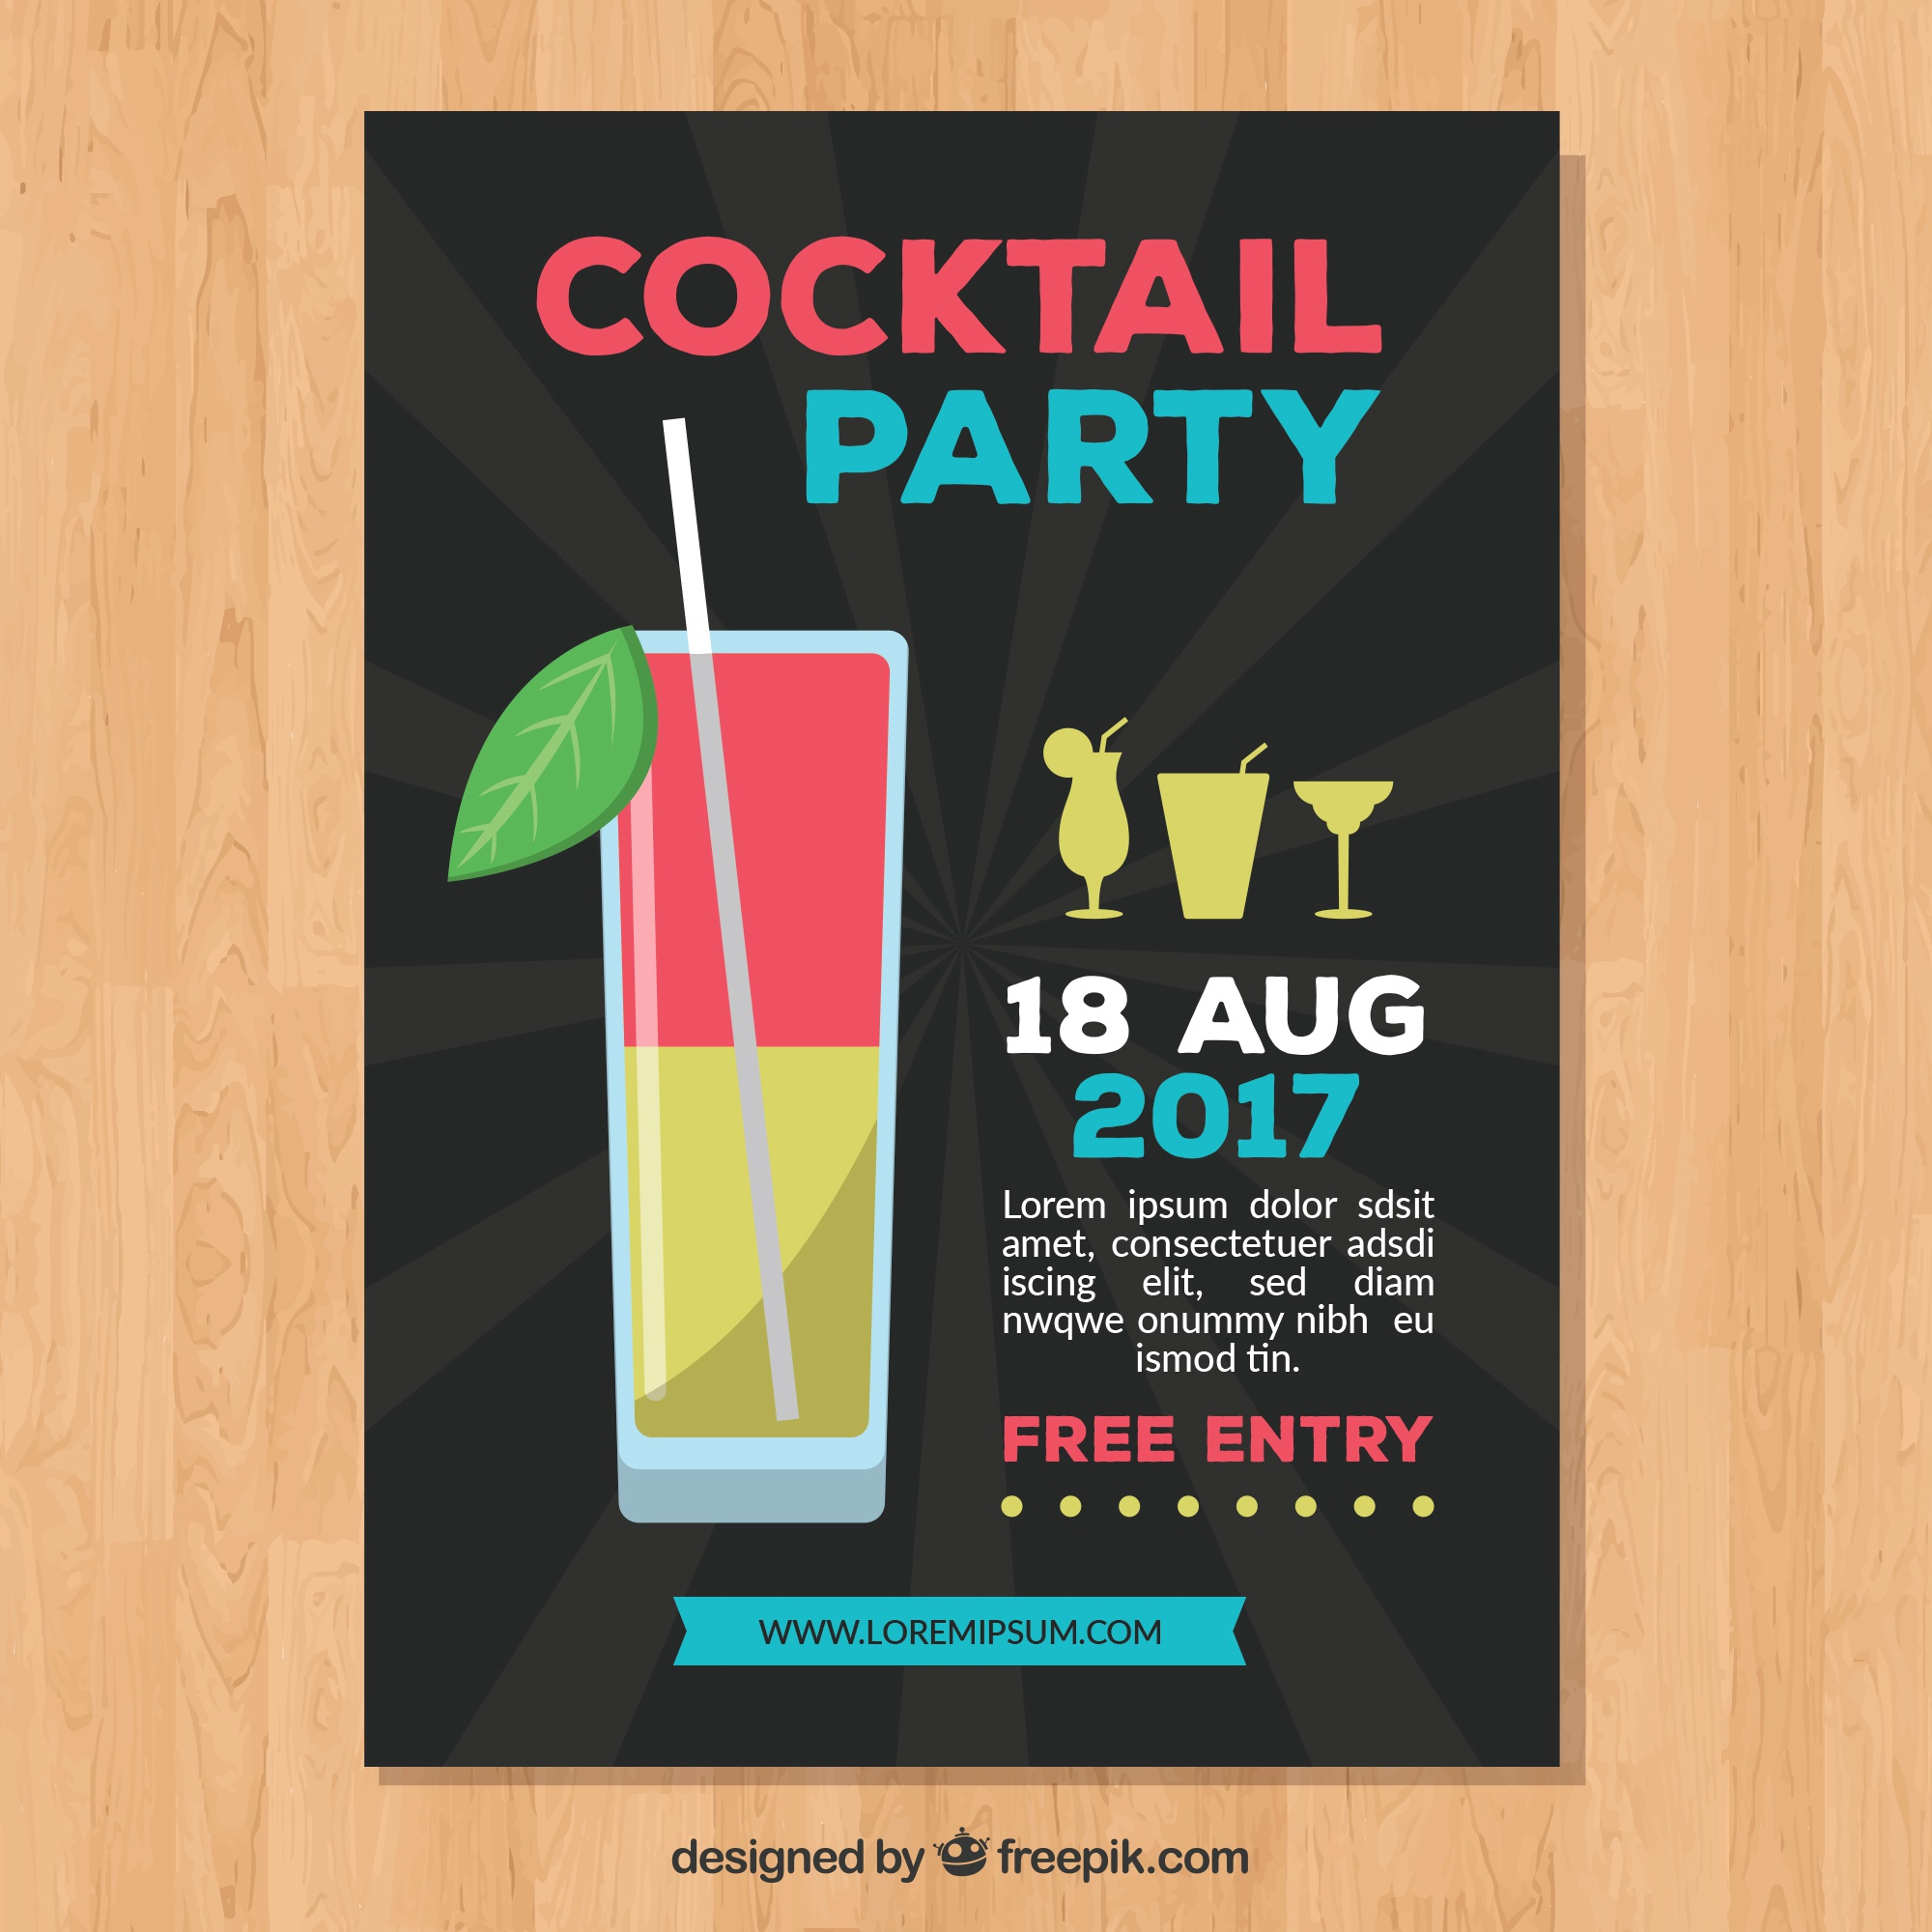 Leaflet in cocktail party in flat design